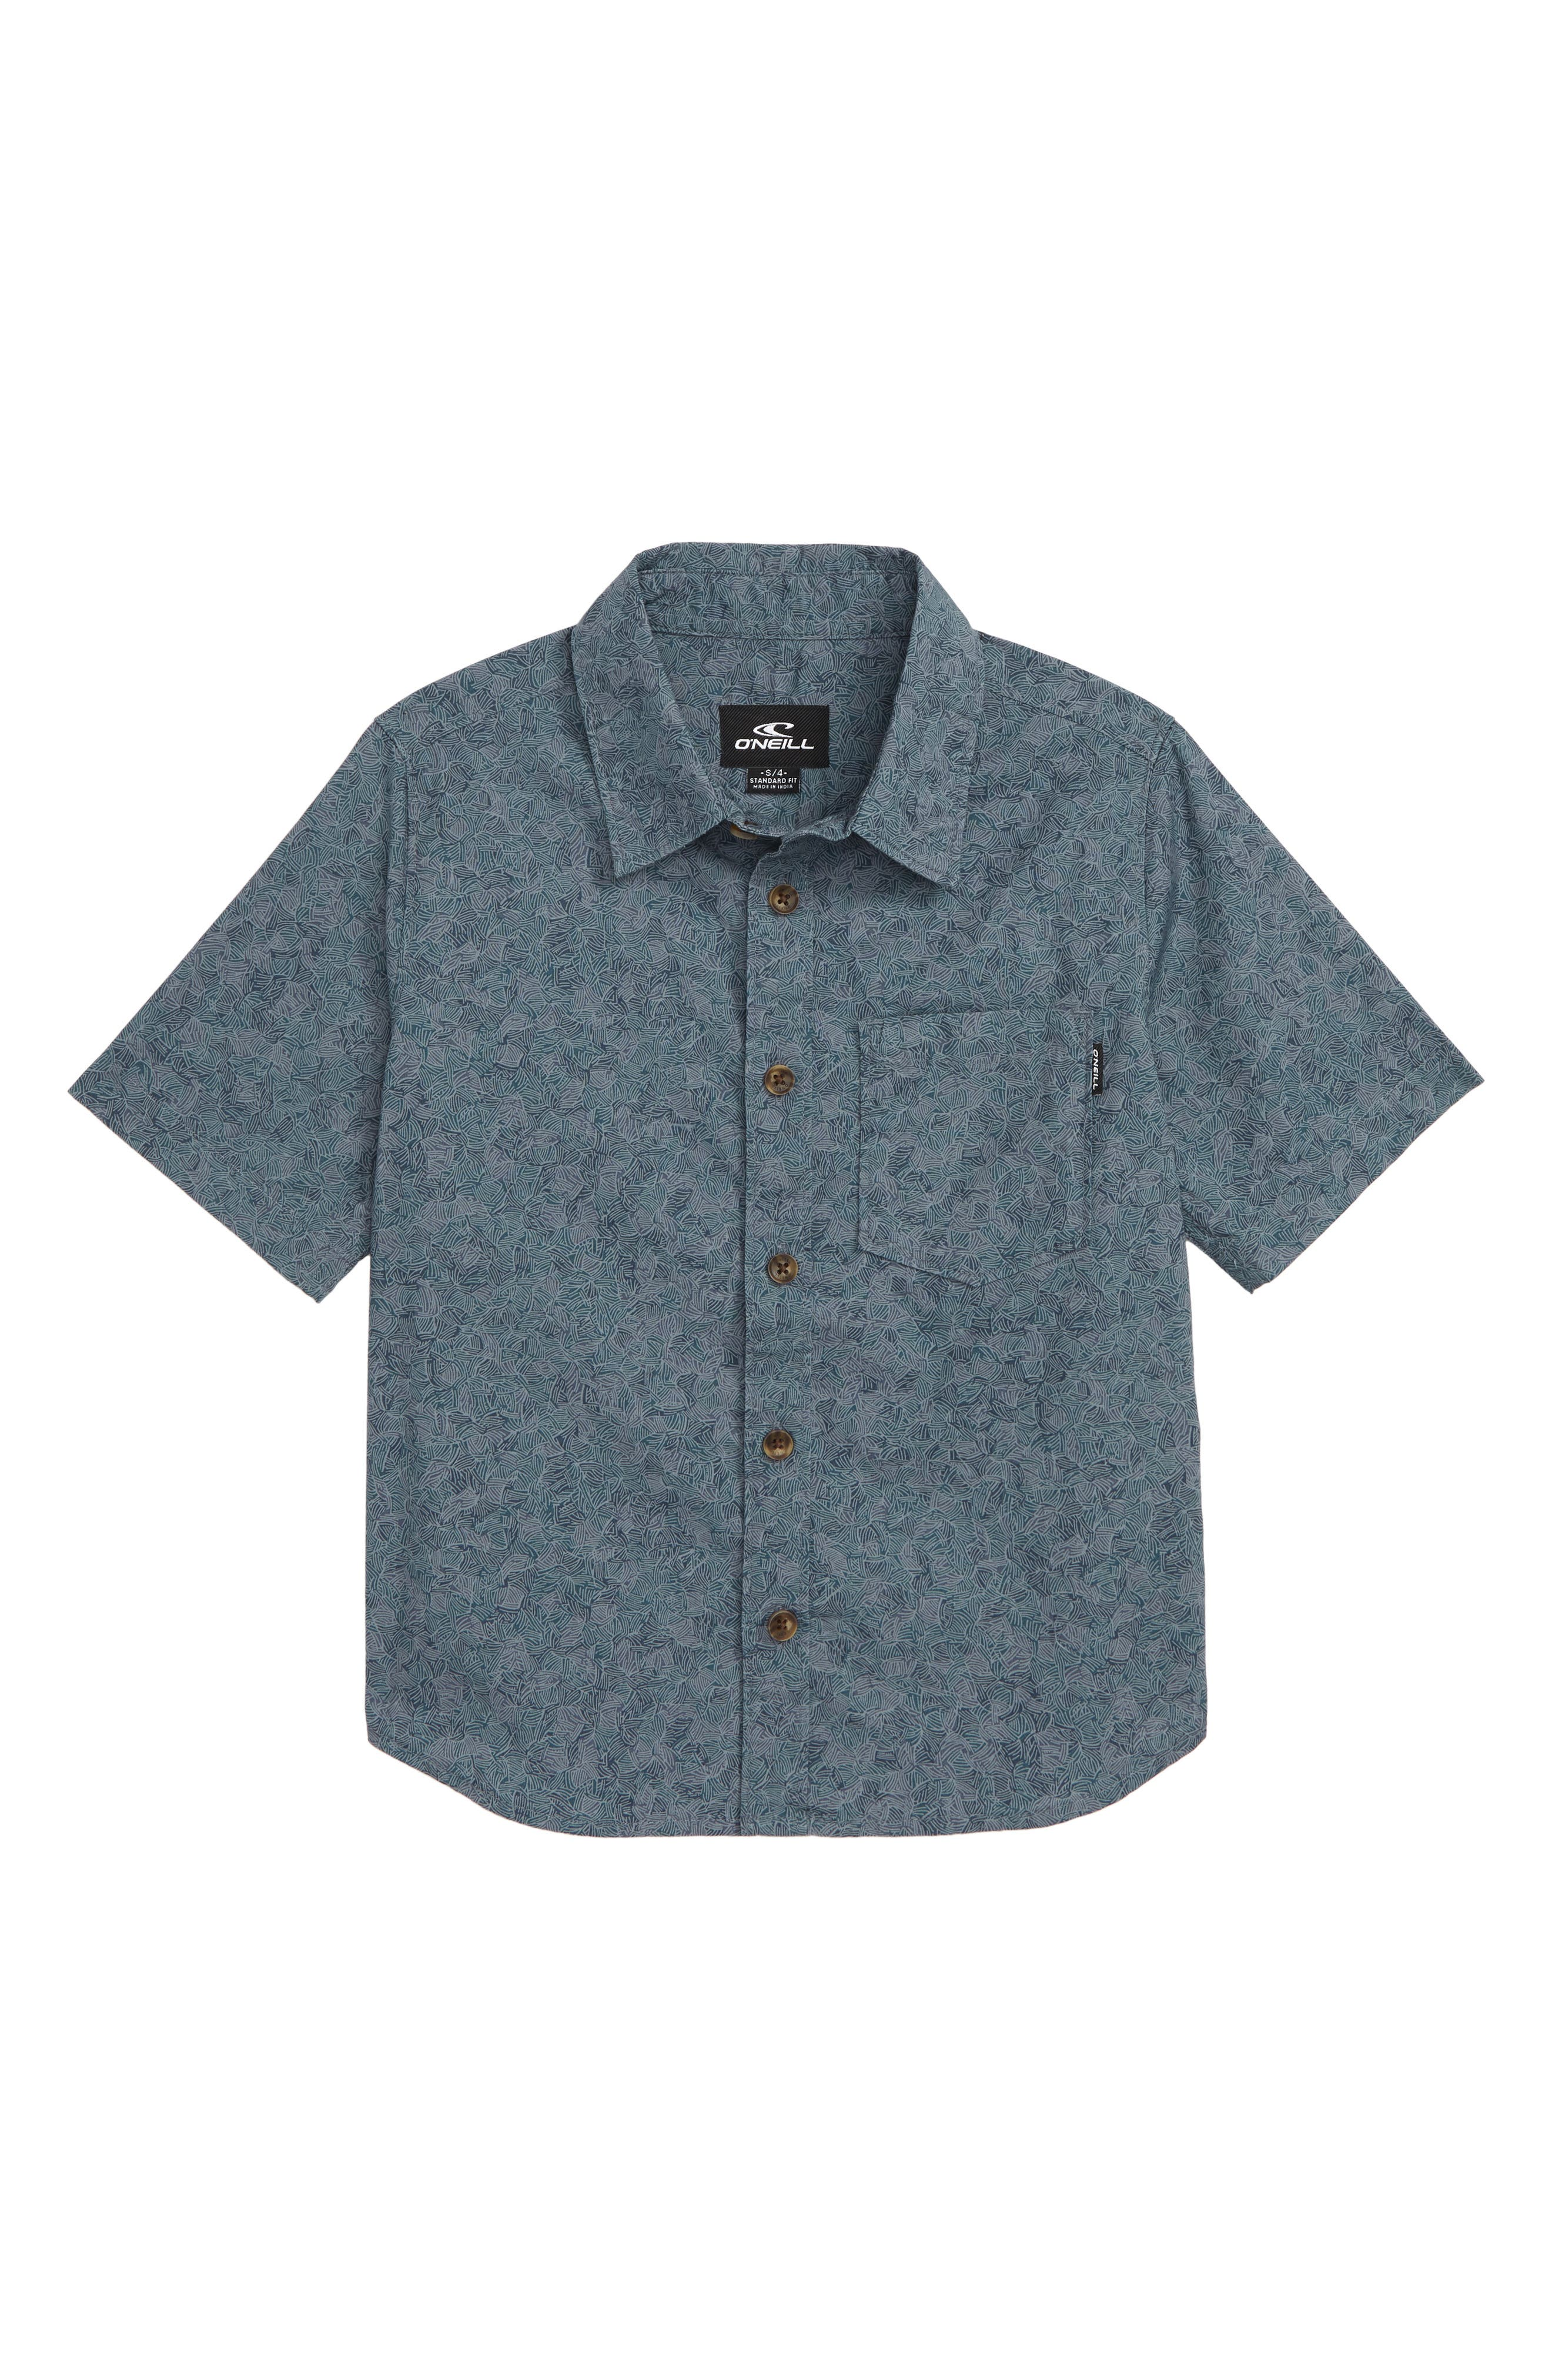 Structure Woven Shirt,                         Main,                         color, DARK BLUE